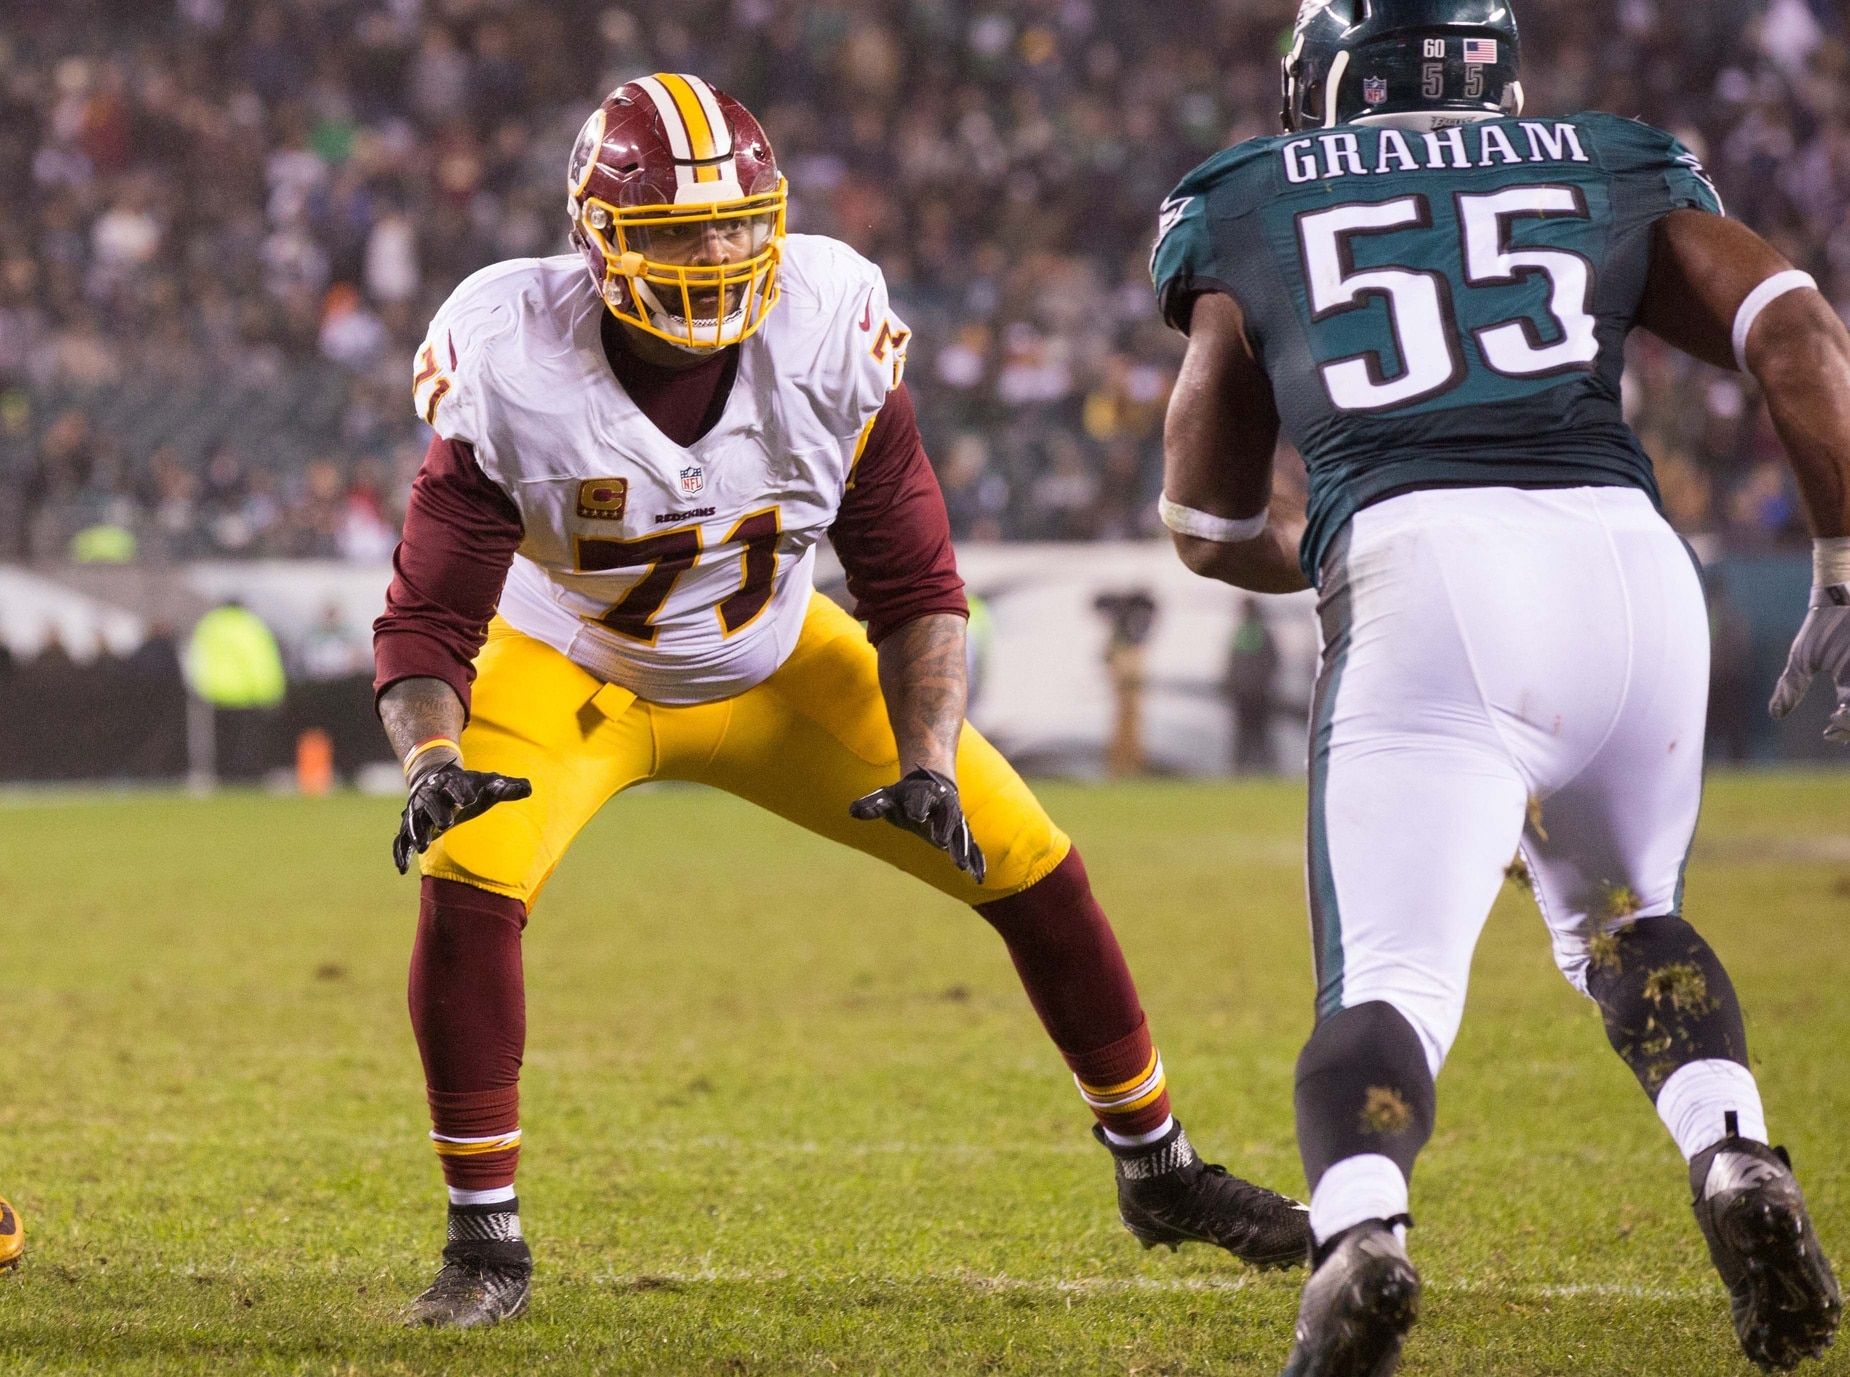 Trent Williams' Redskins holdout due to issues with training staff